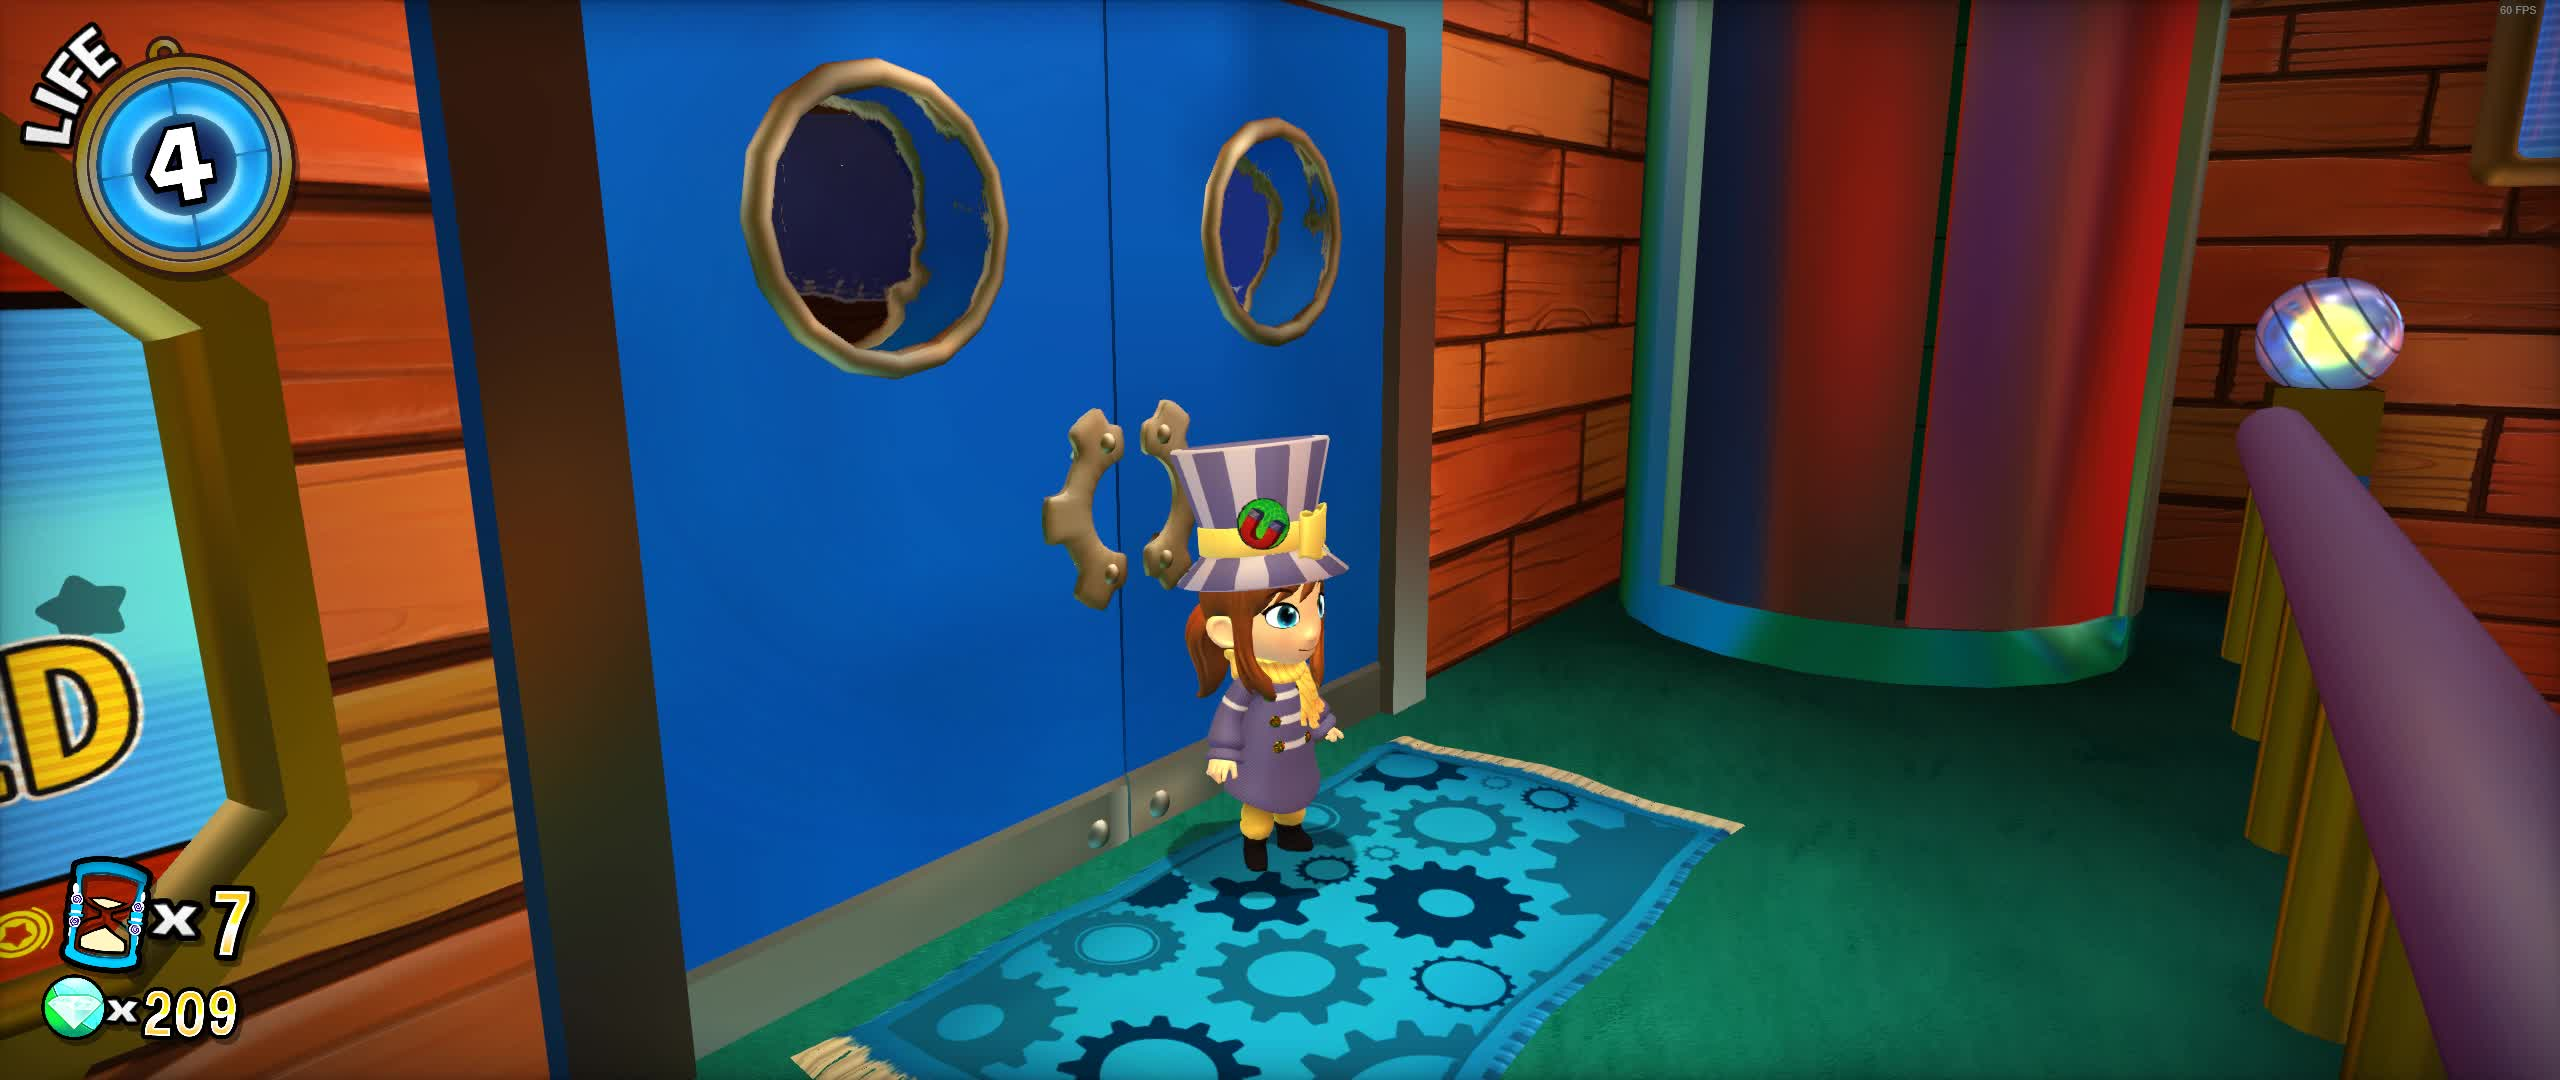 ahatintime, A Hat in Time 2018.08.22 - 19.39.10.06.DVR GIFs